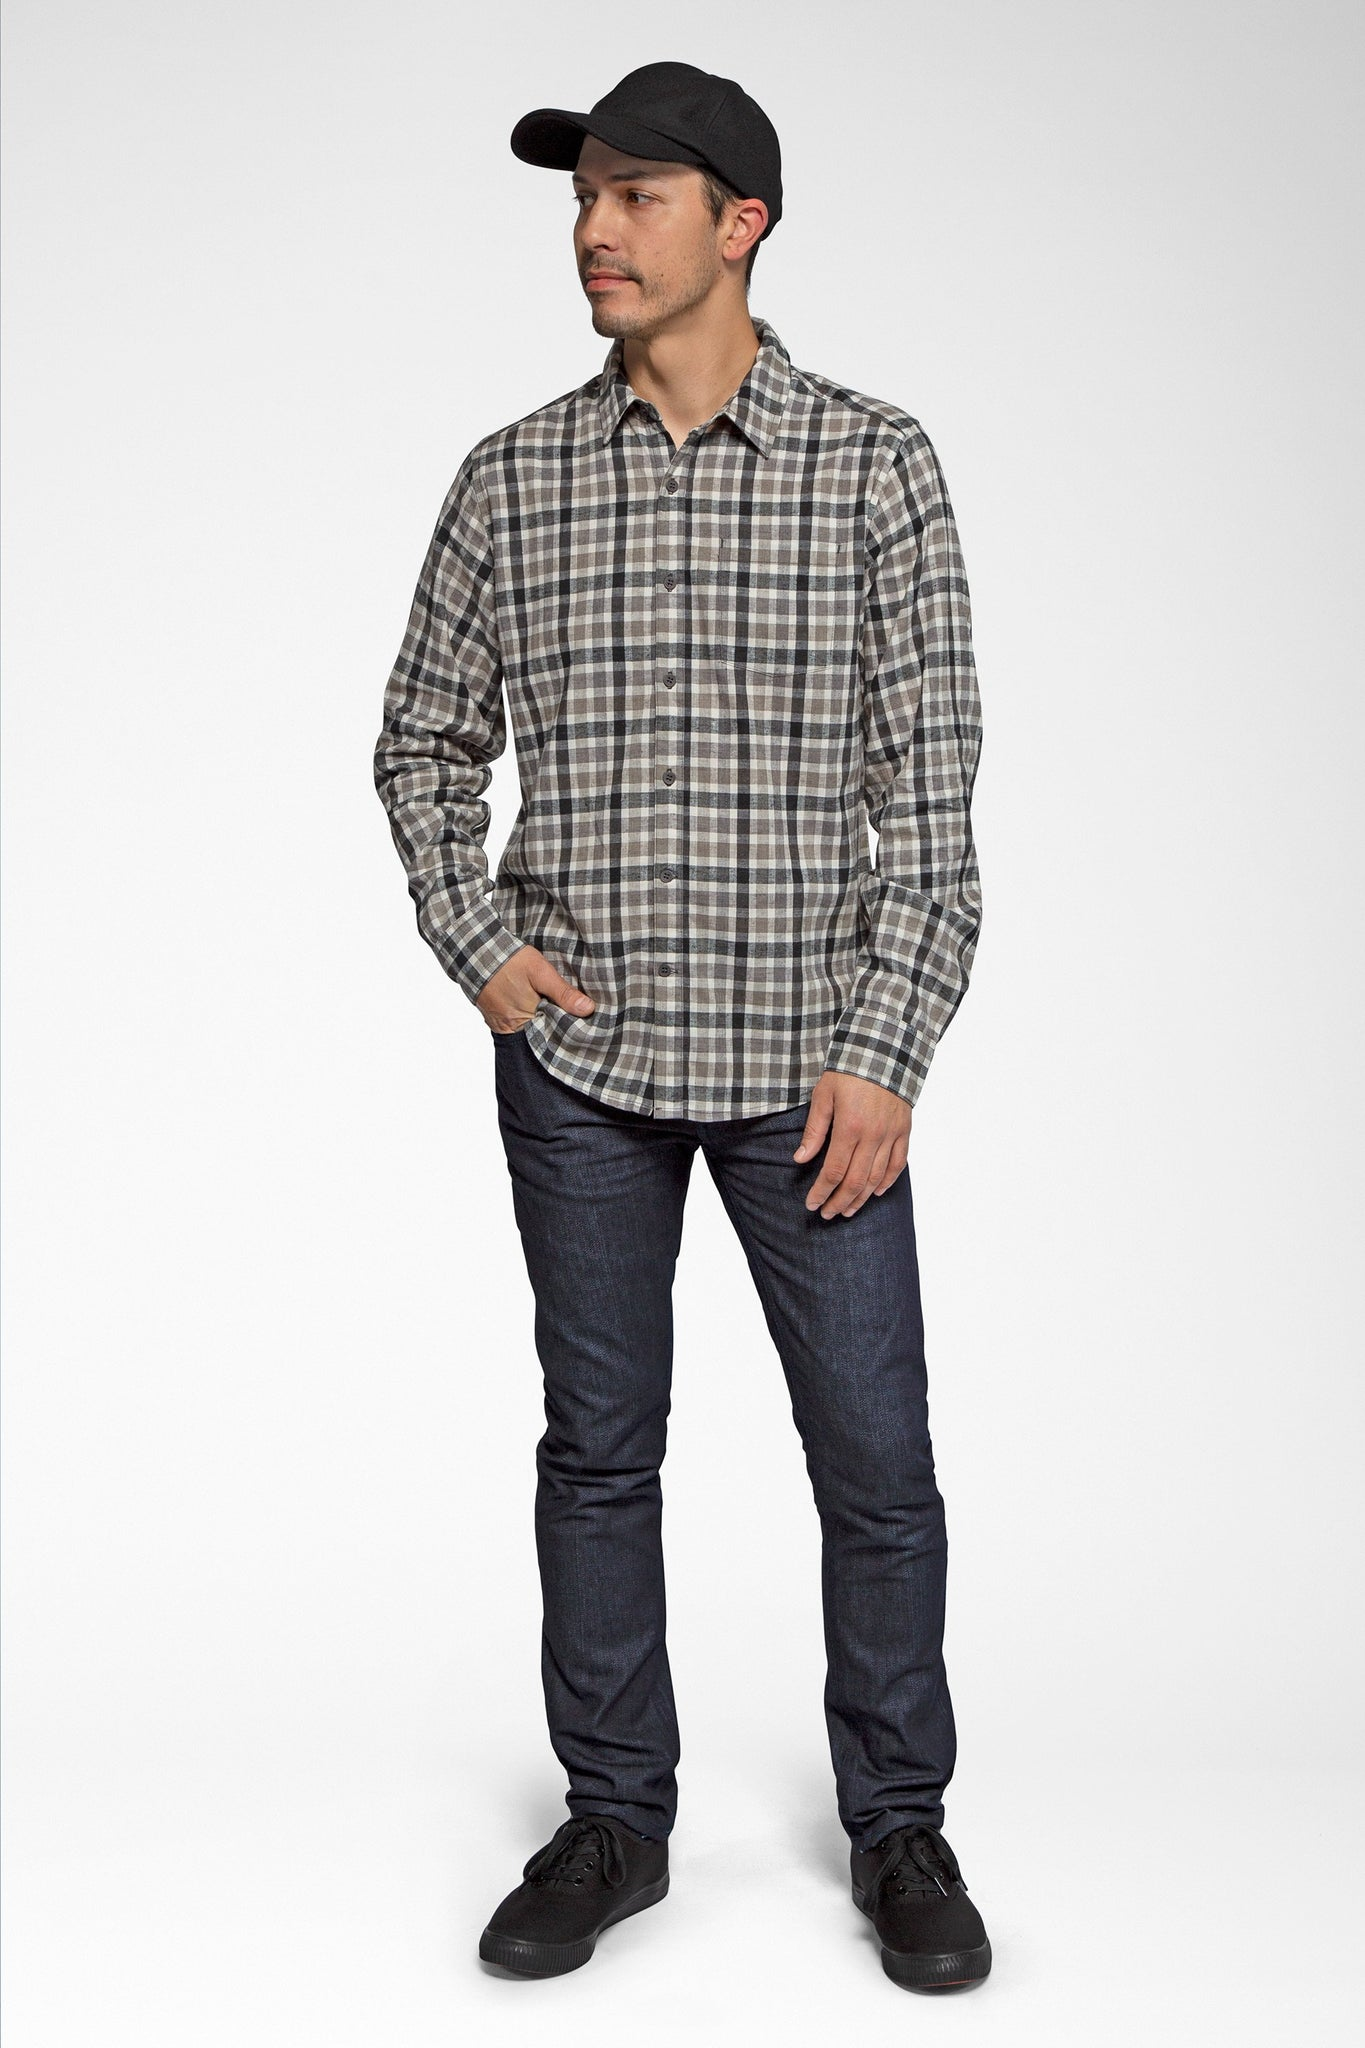 men's long sleeve hemp blend checkout shirt - caviar plaid